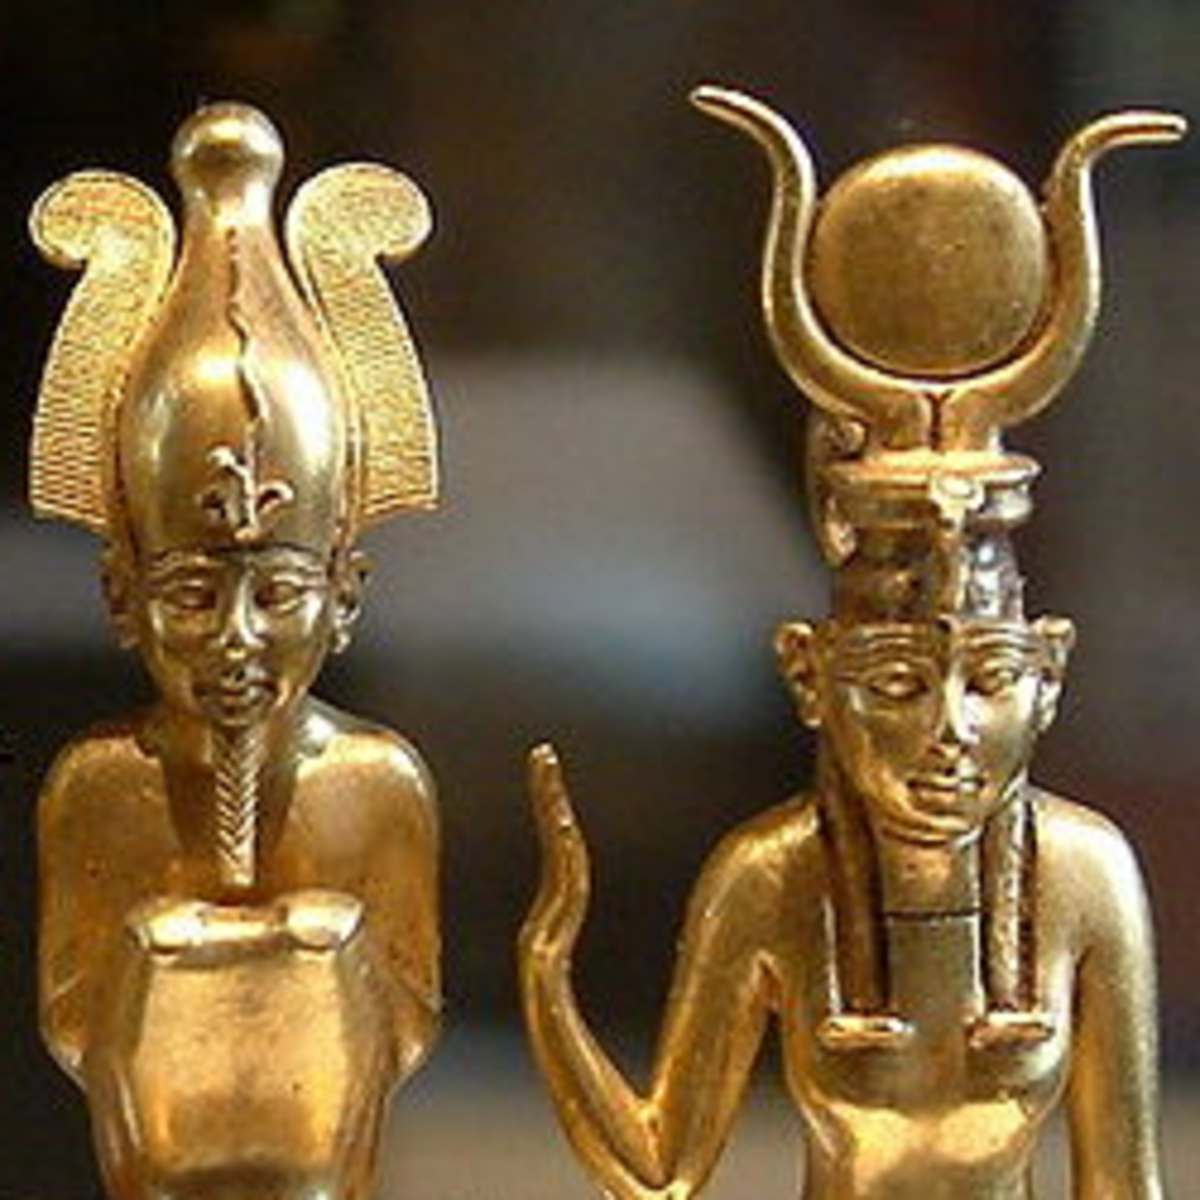 Osiris and Isis: An Egyptian Love Story